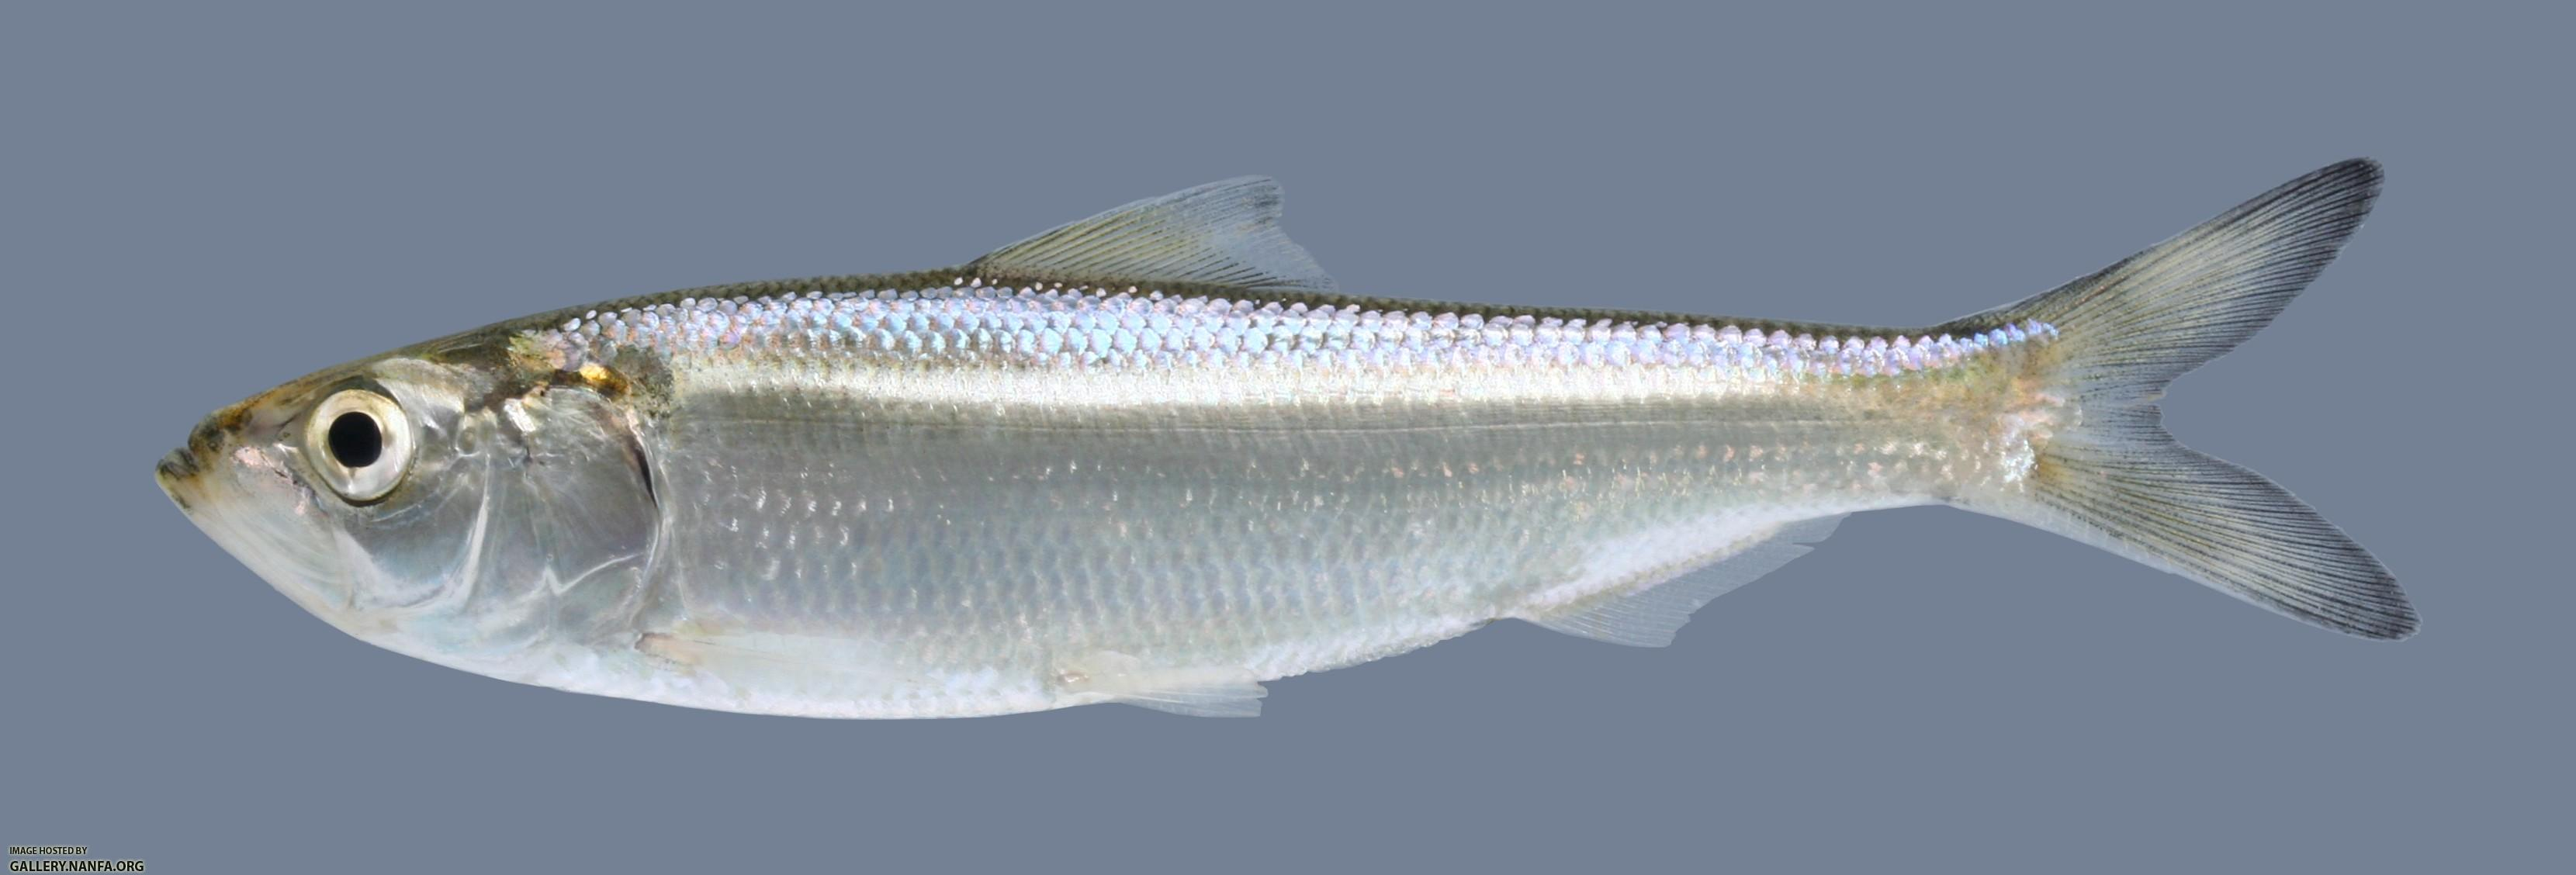 Image gallery skipjack shad for Fish dream meaning